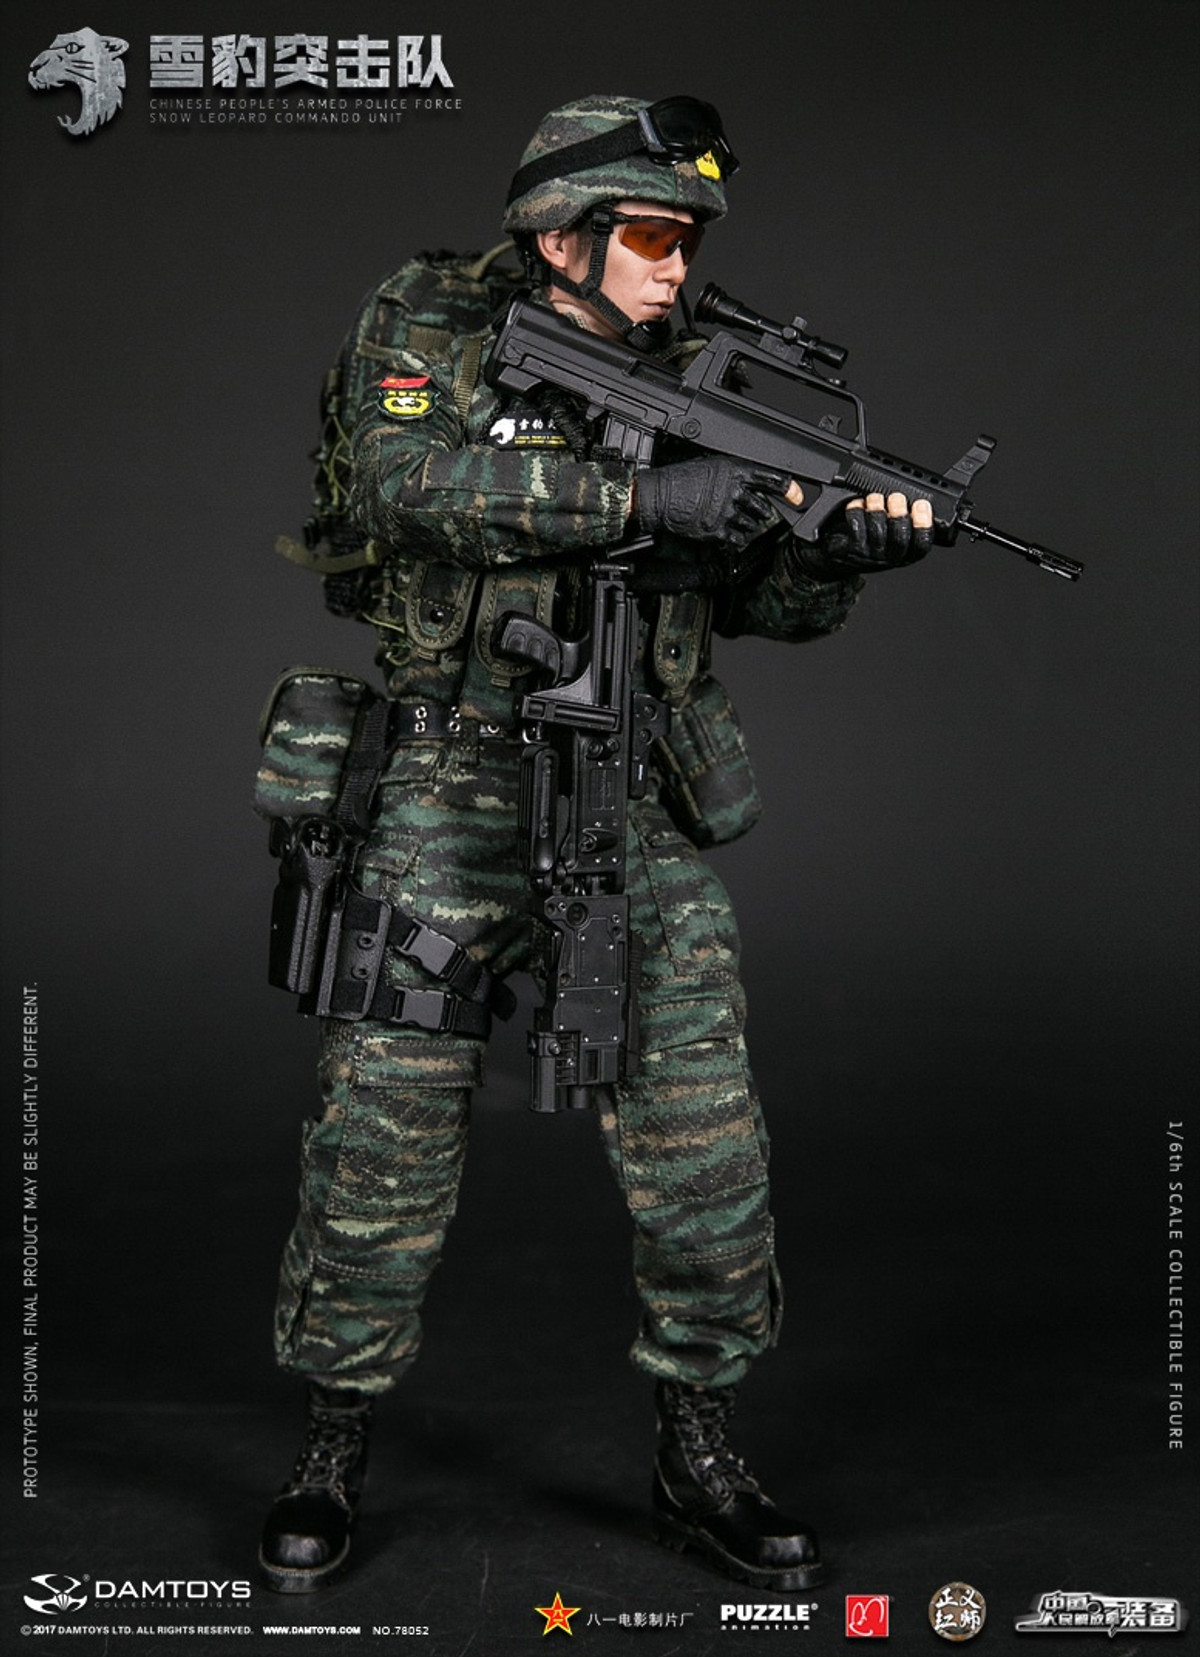 Head Sculpt for DAM 78052 Snow Leopard Commando Unit Team Member 1//6 Scale